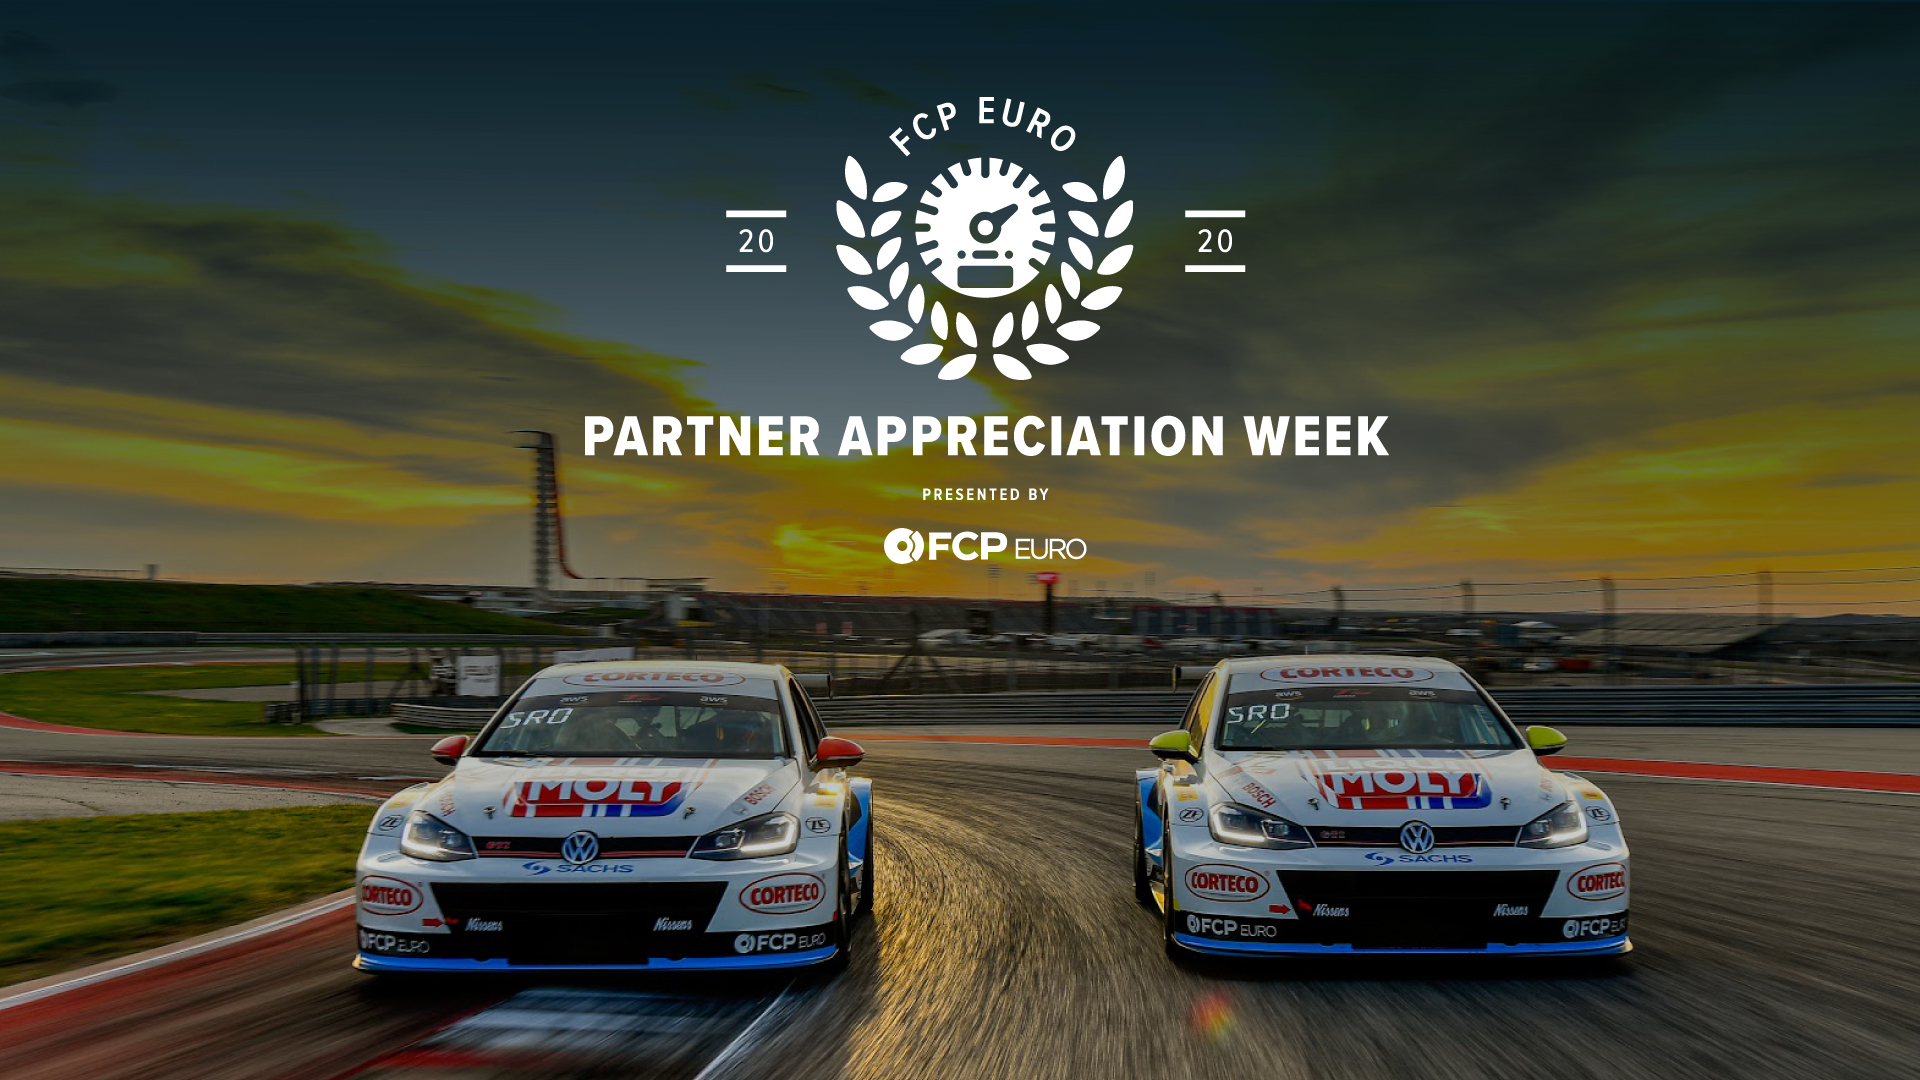 FCP Euro 2020 Partner Appreciation Week